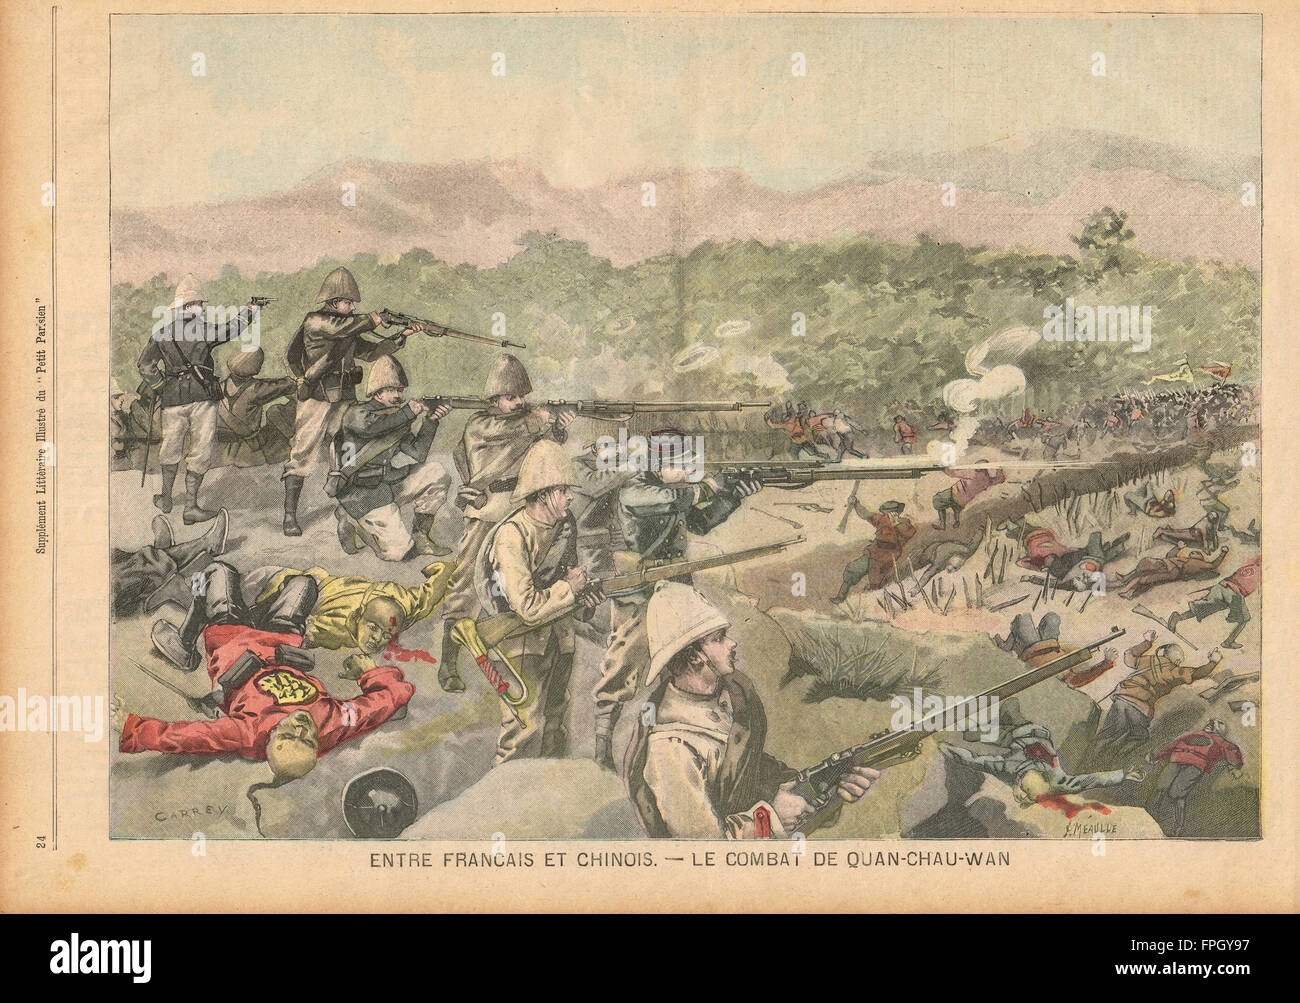 The French in China Boxer rebellion 1900 - Stock Image